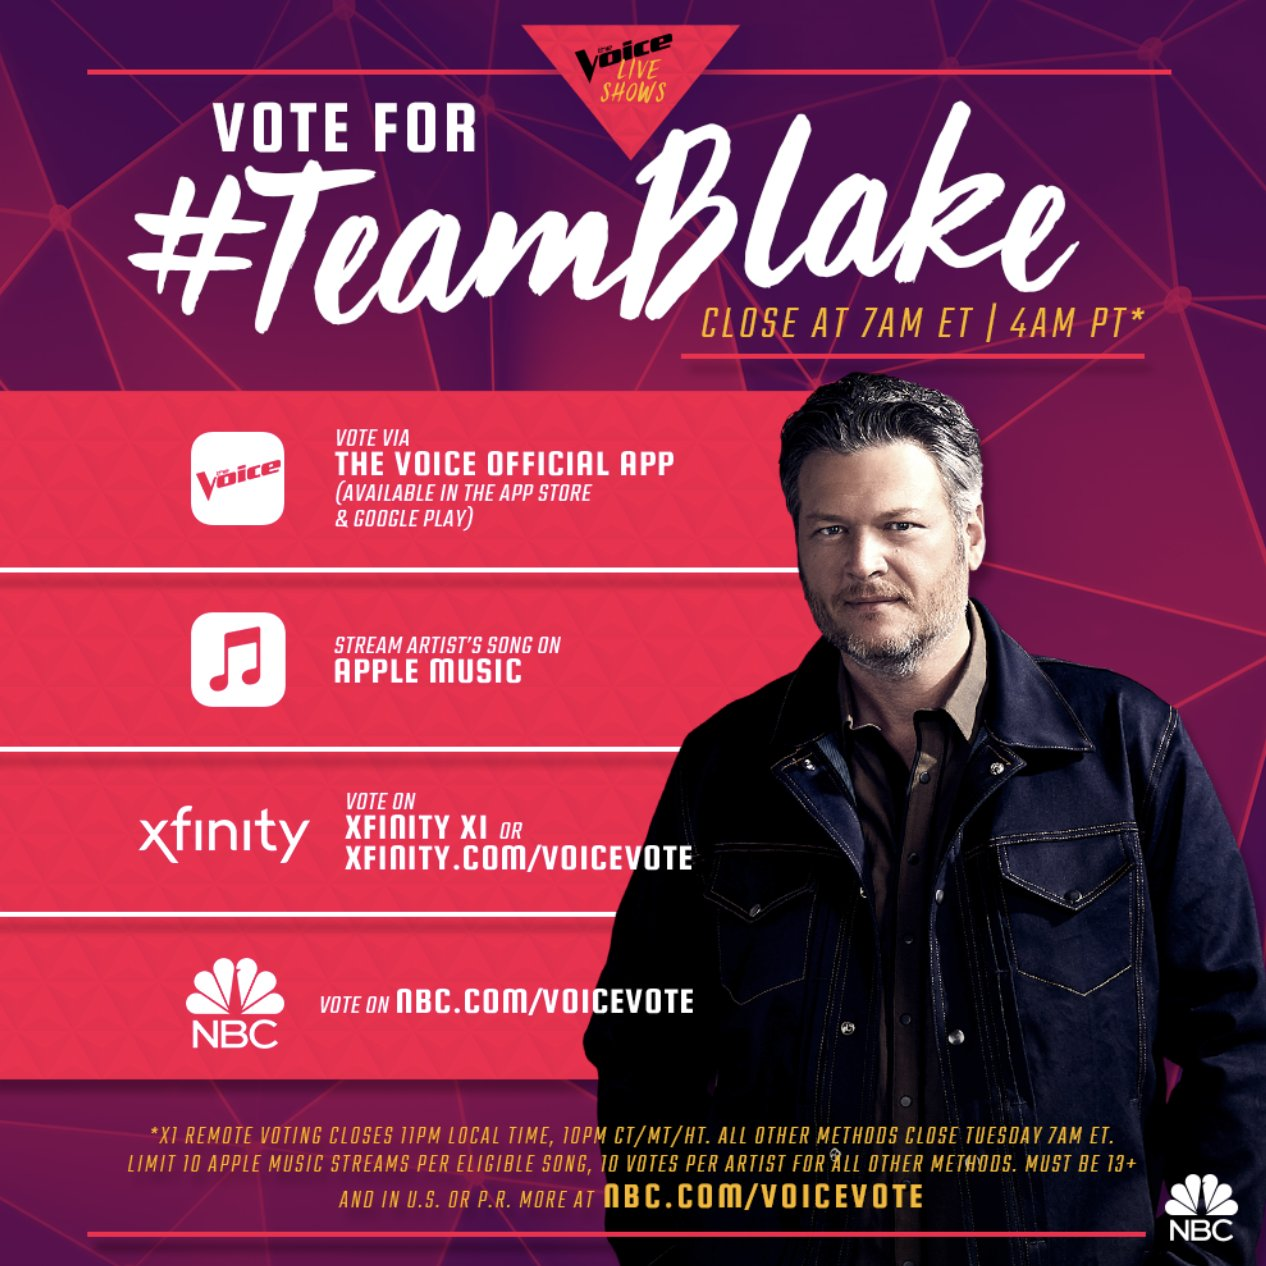 .@NBCTheVoice finale is here y'all! Get out there and vote for Team Blake!! #VoteKirk #VoteChris -Team BS https://t.co/Mf976ACj2Y